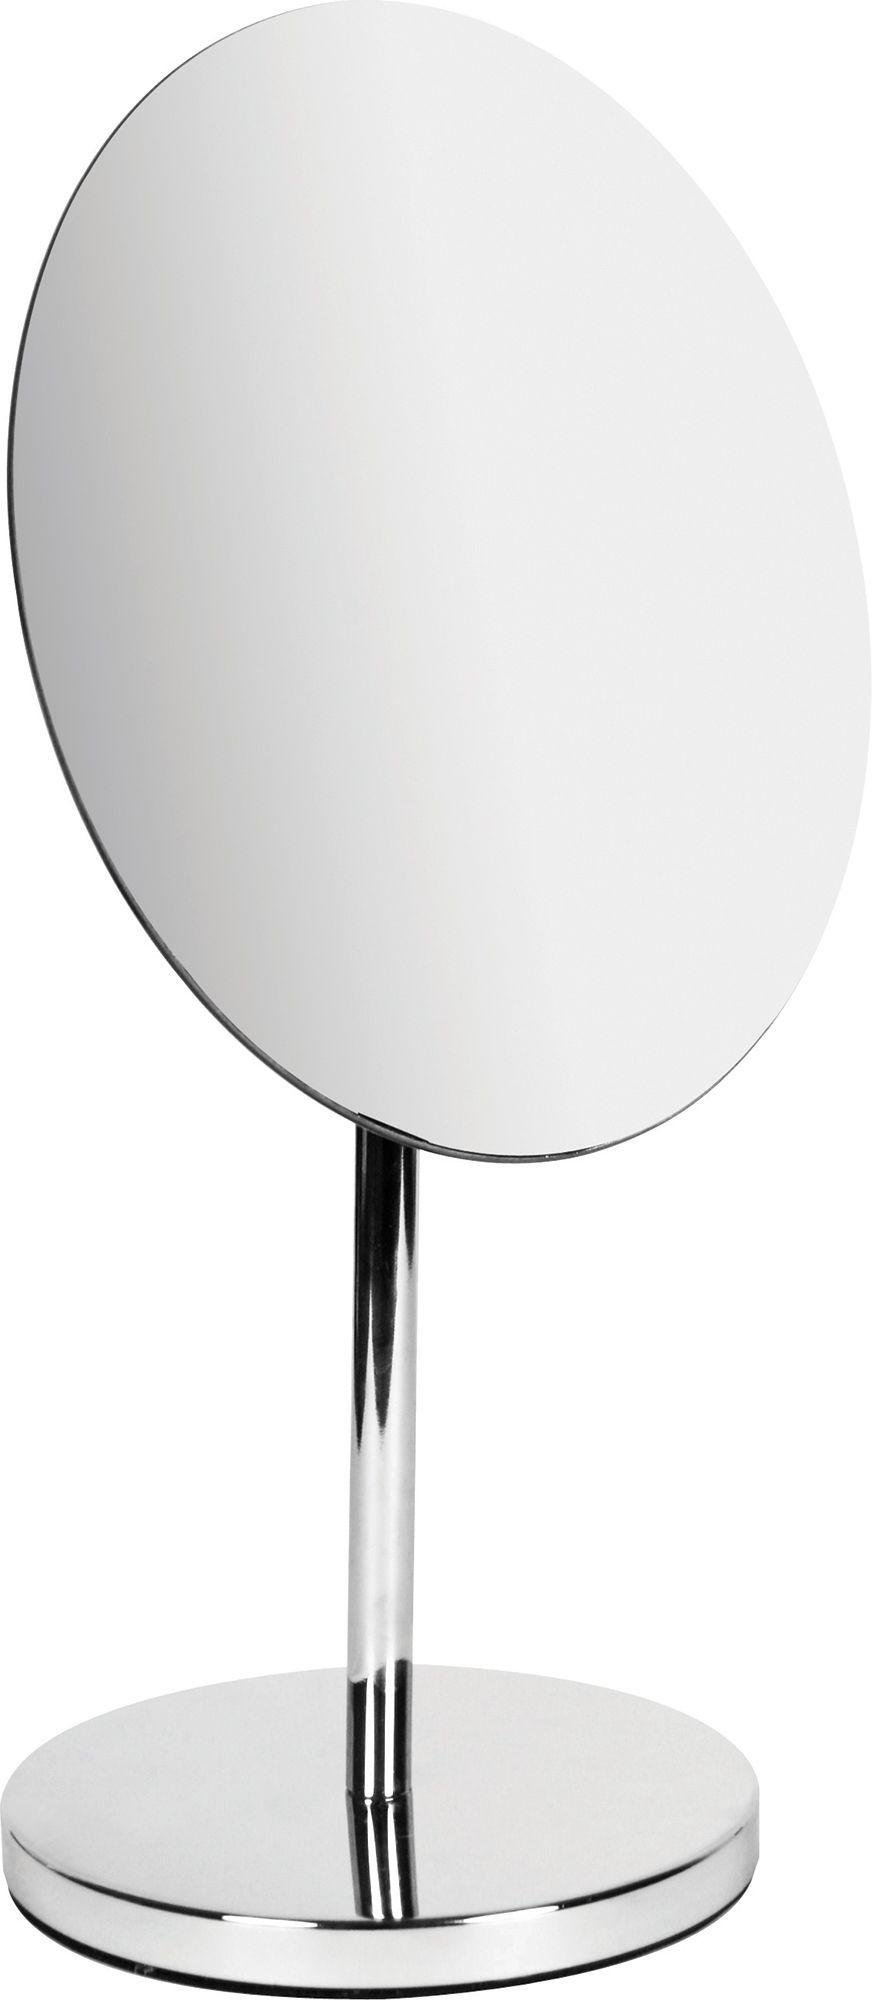 Sabichi Miami Mirror - Chrome.